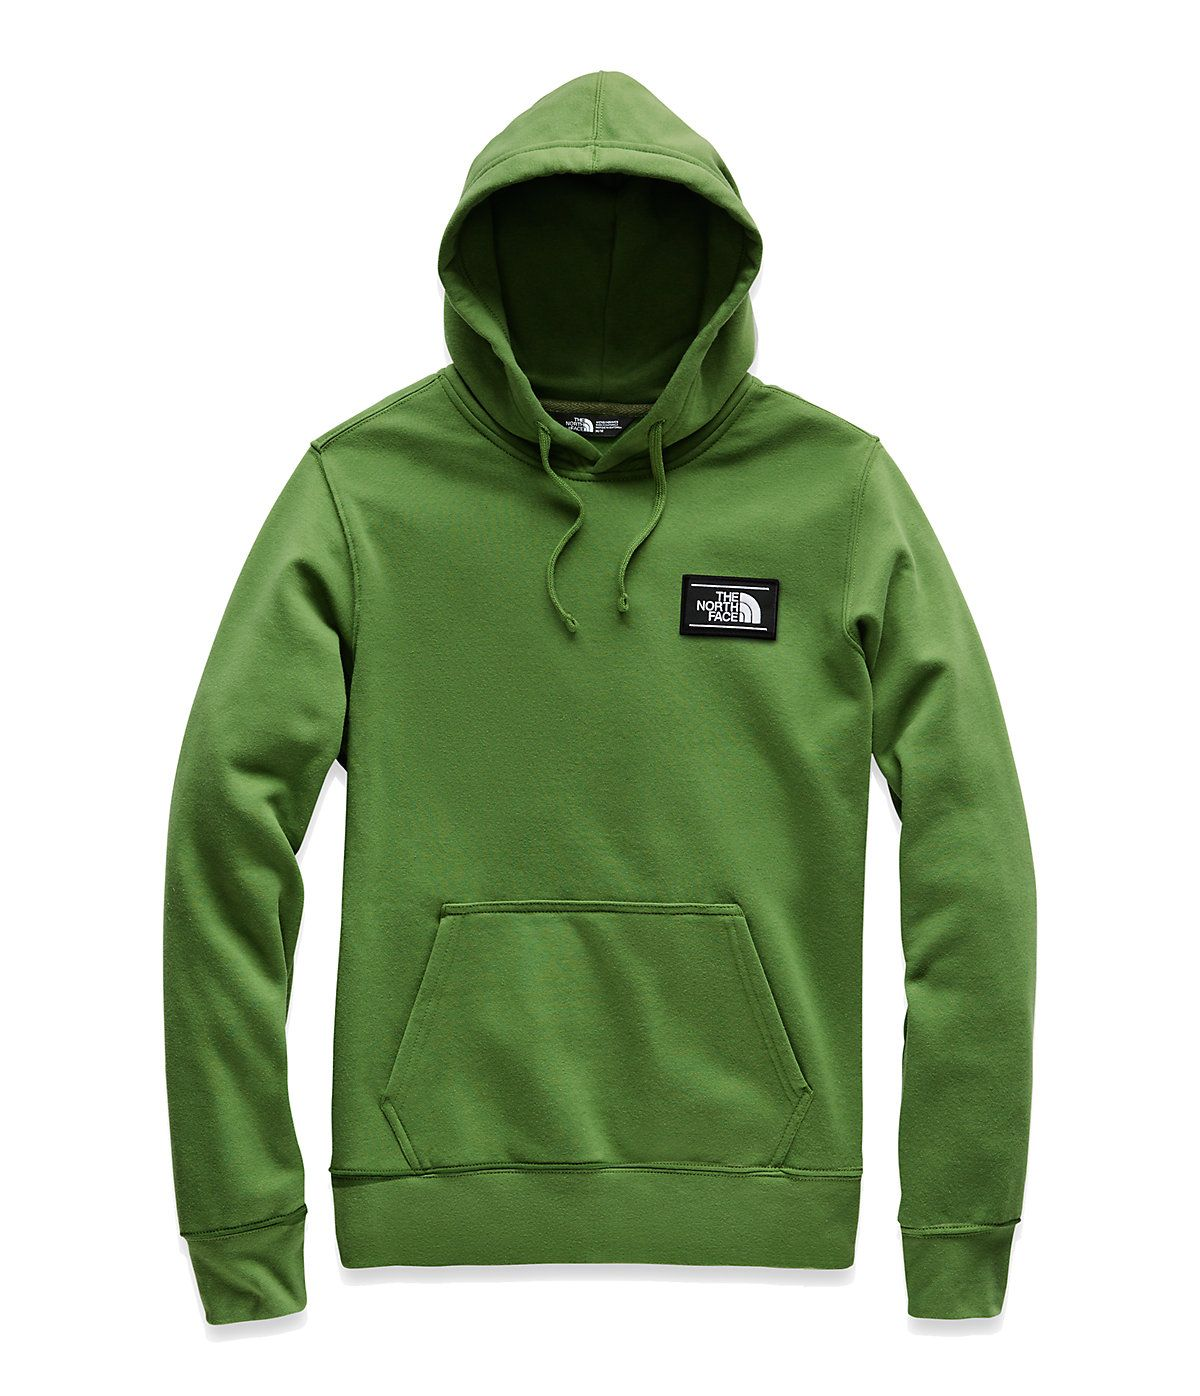 f0c9b94bf901 The North Face Men s Bottle Source Pullover Hoodie in 2019 ...